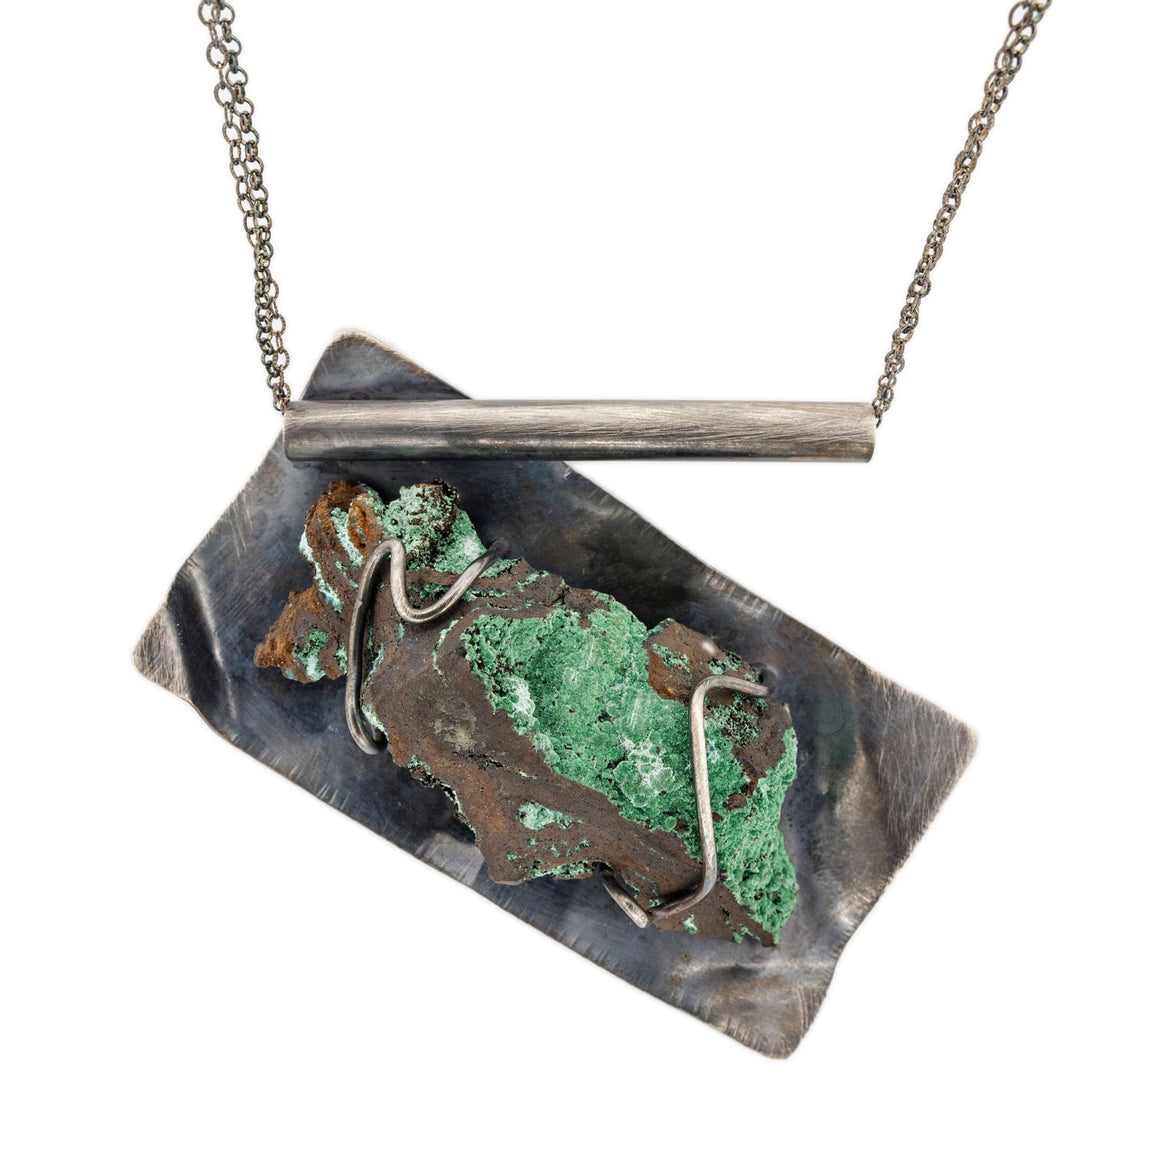 Konacocite Mineral Specimen and Oxidized Silver Necklace by Original Sin Jewelry